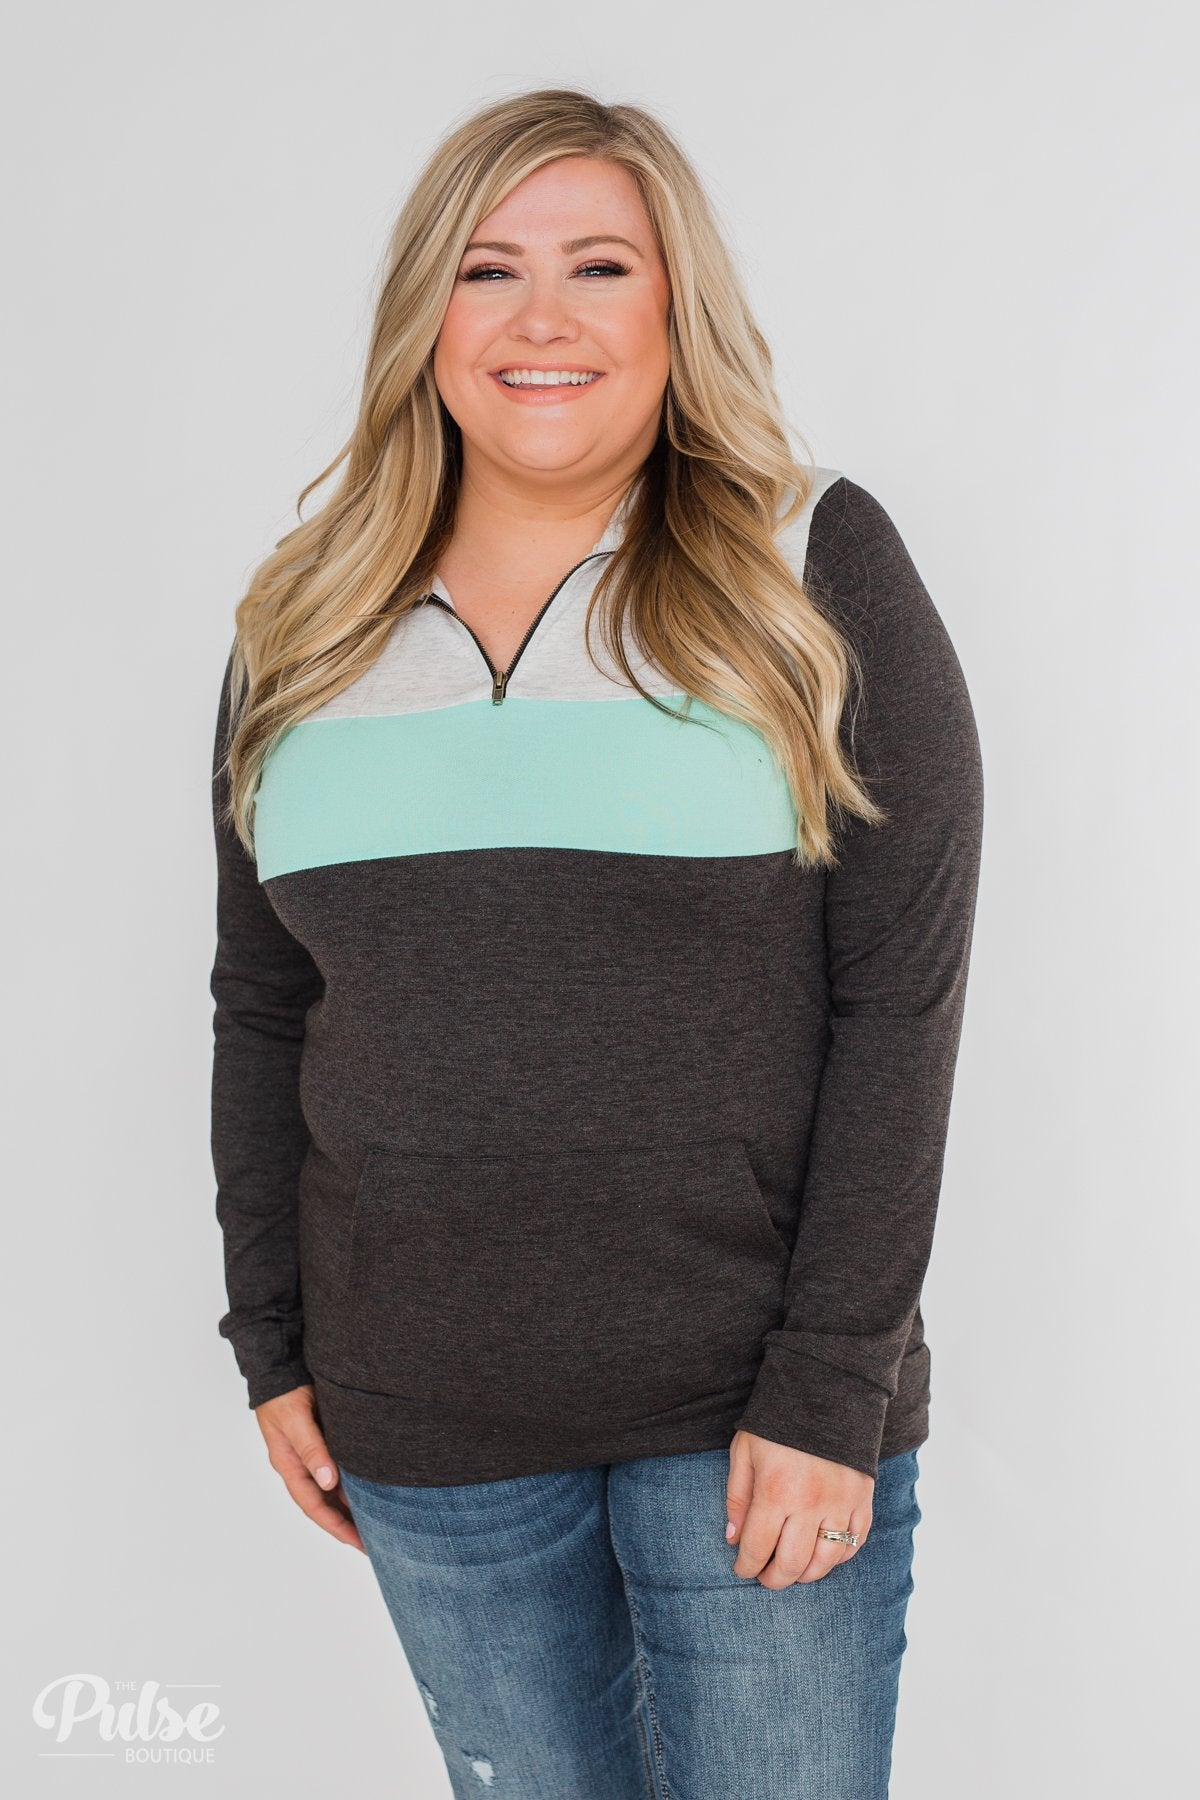 On the Go Quarter Zip Pullover- Mint & Charcoal